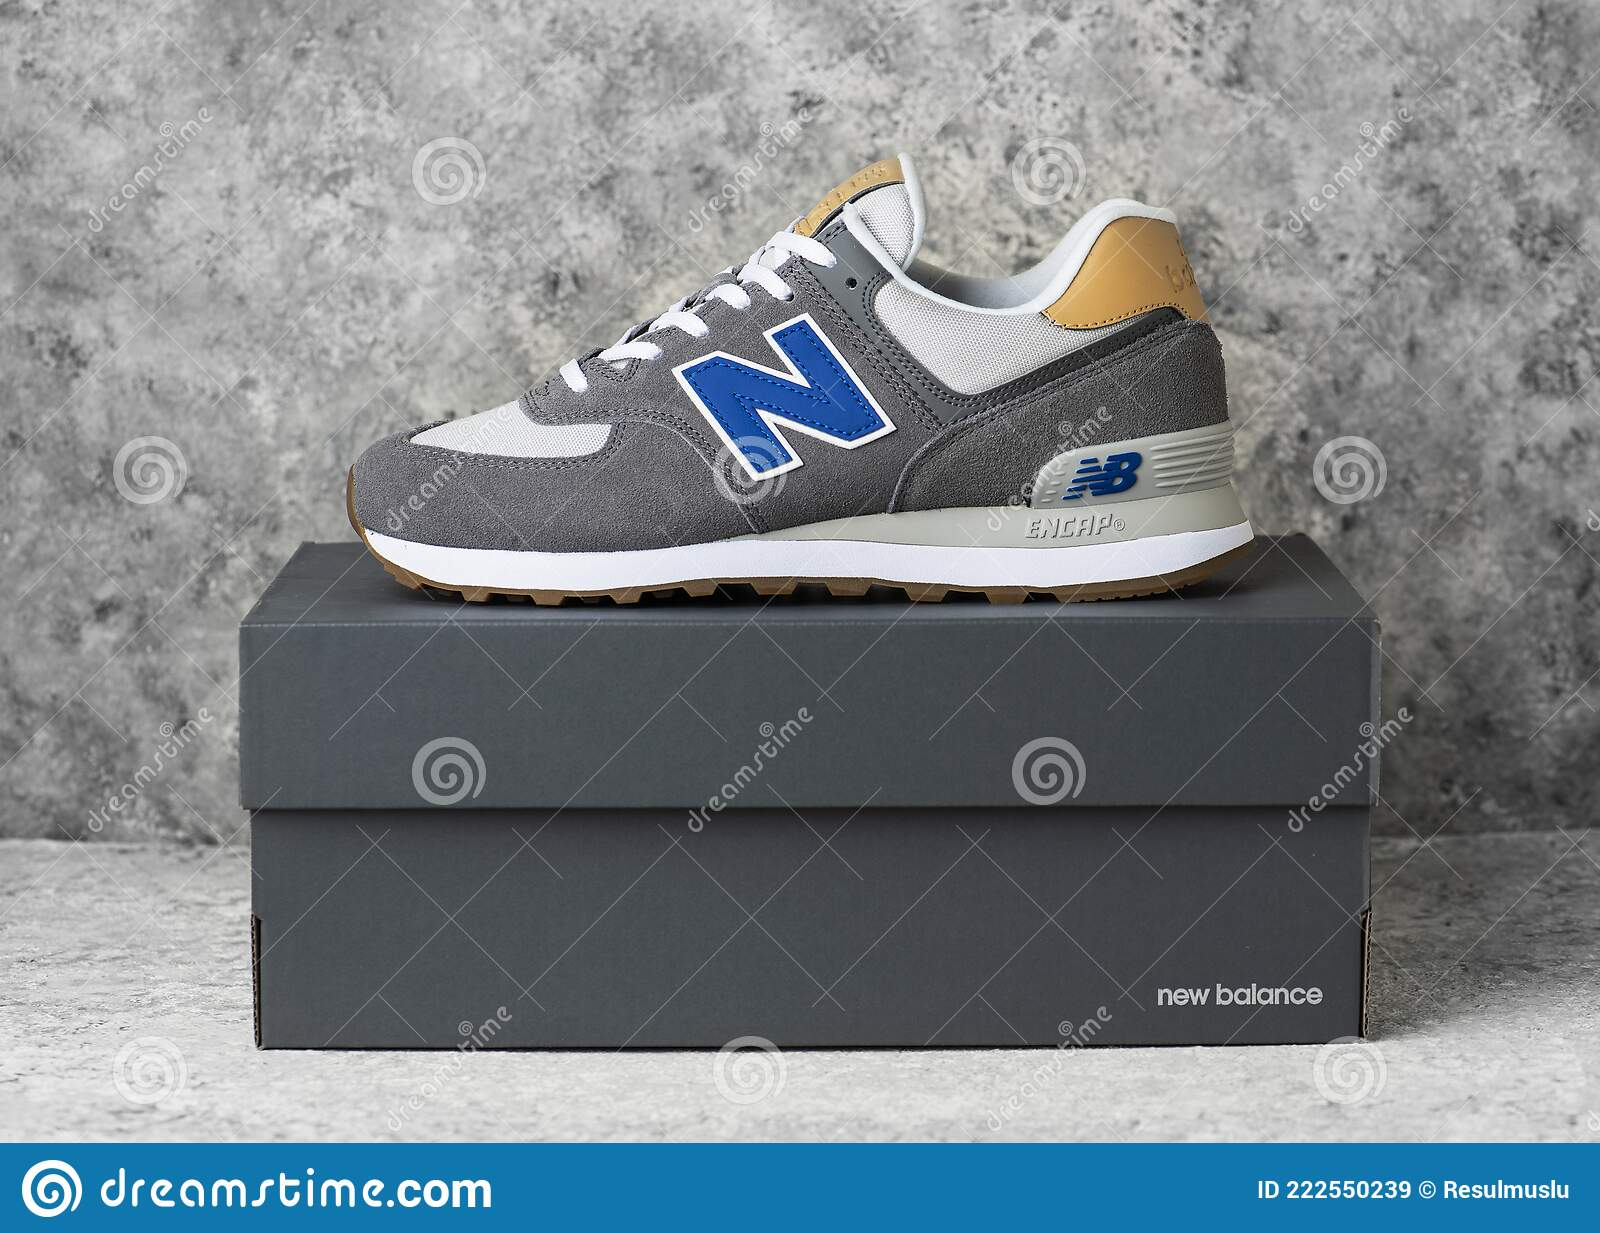 New Balance Shoes Model 574. Editorial Stock Image - Image of ...